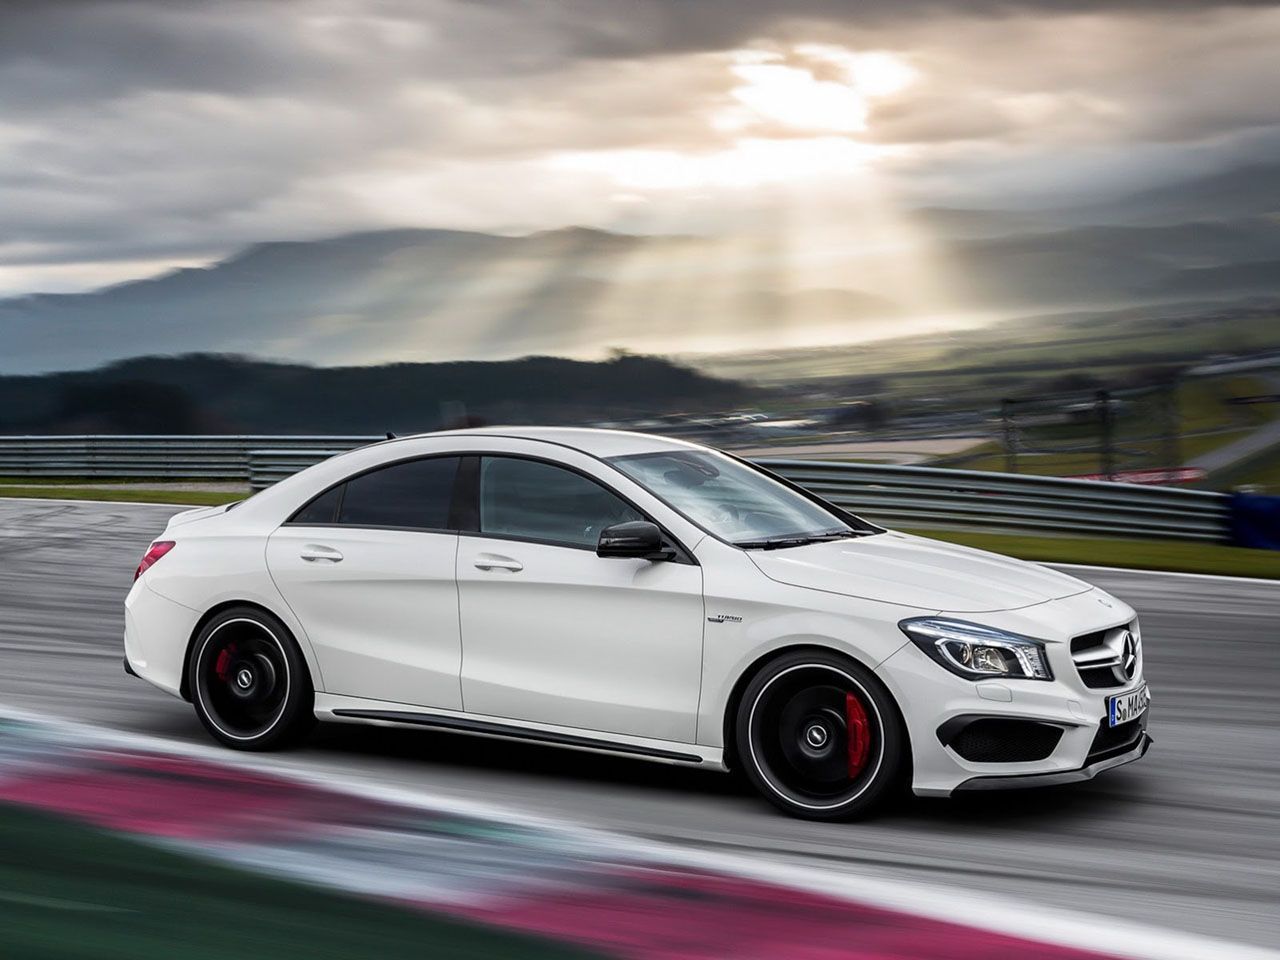 Epic shot of the new mercedes benz cla45 amg